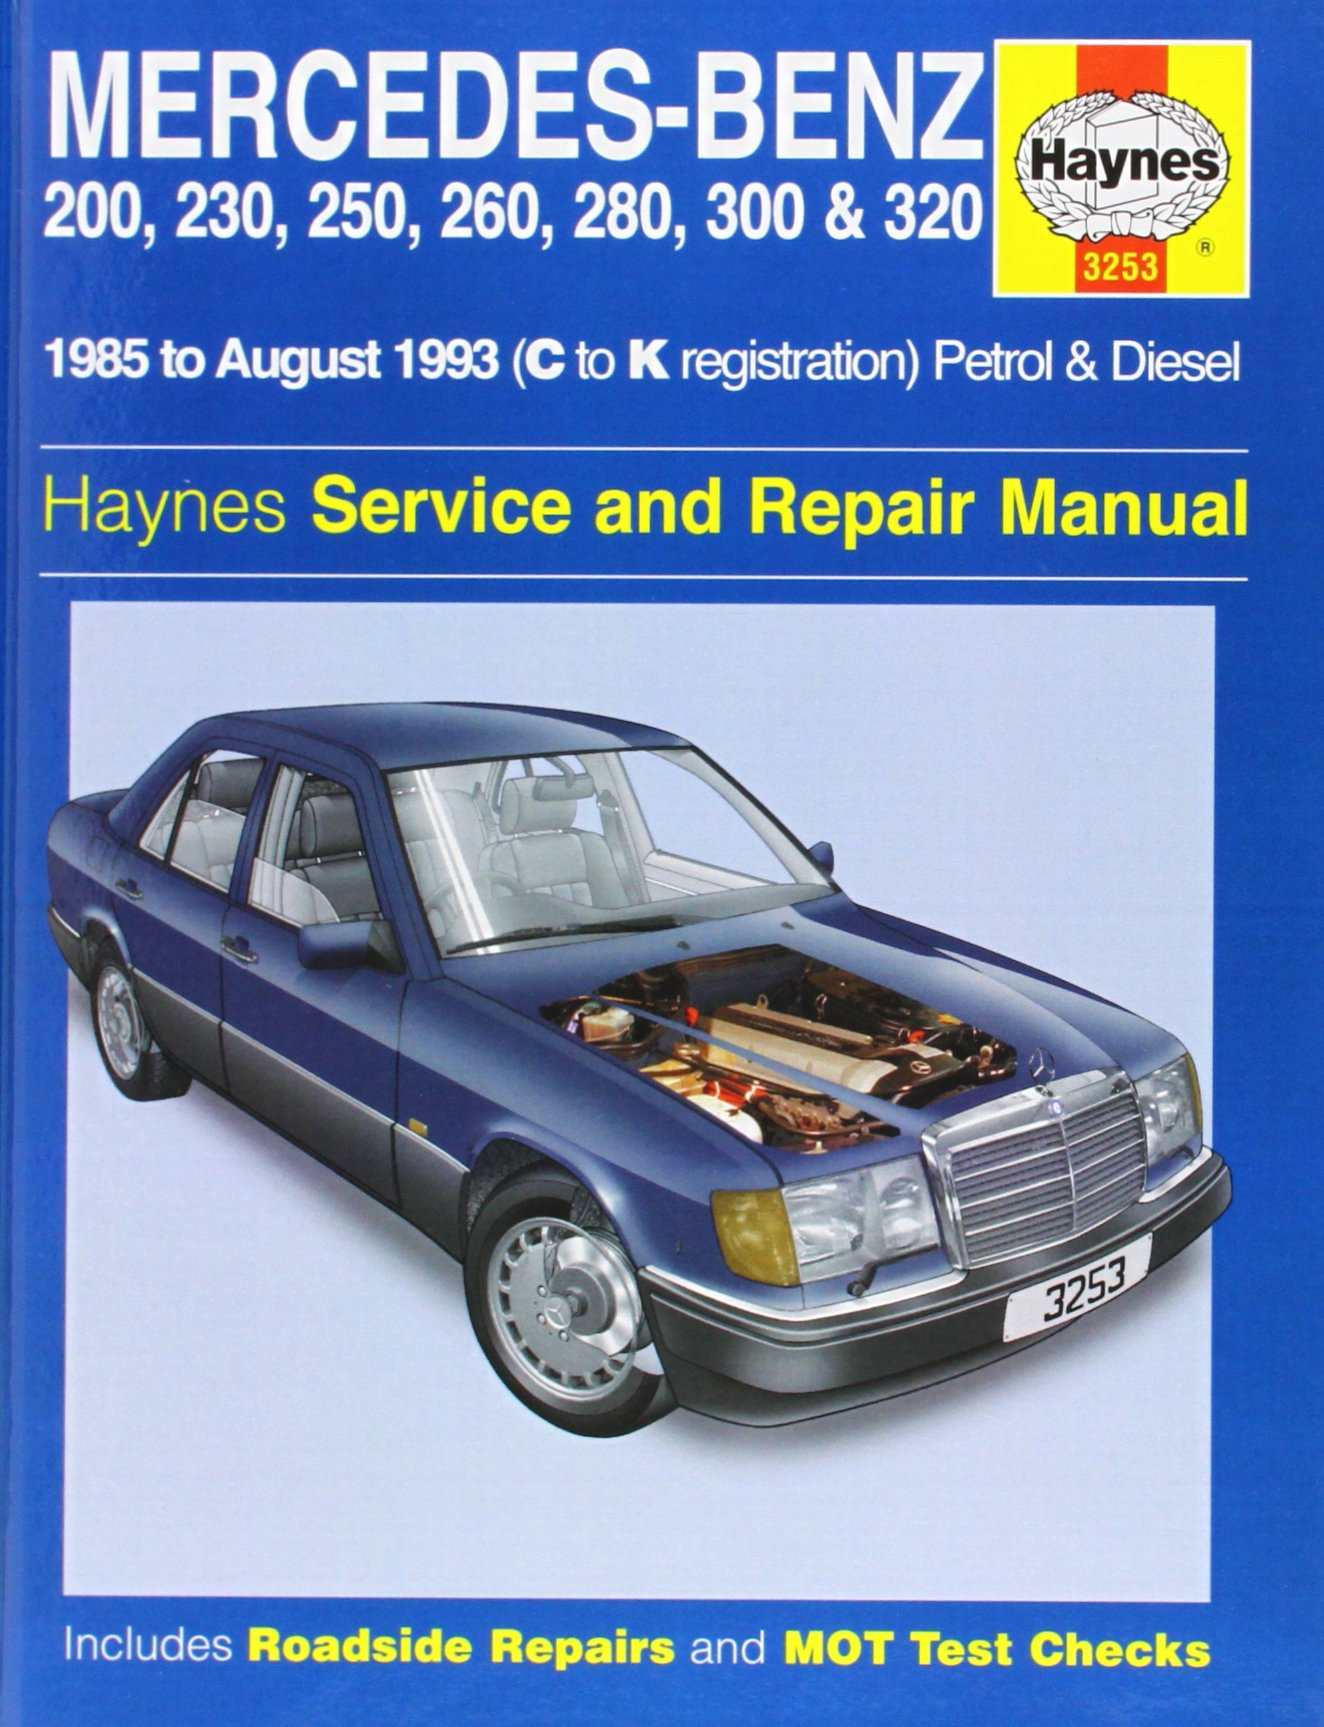 mercedes benz 124 series 85 93 service and repair manual haynes rh amazon  com 1995 Mercedes-Benz S500 Review 1995 Mercedes-Benz SL600